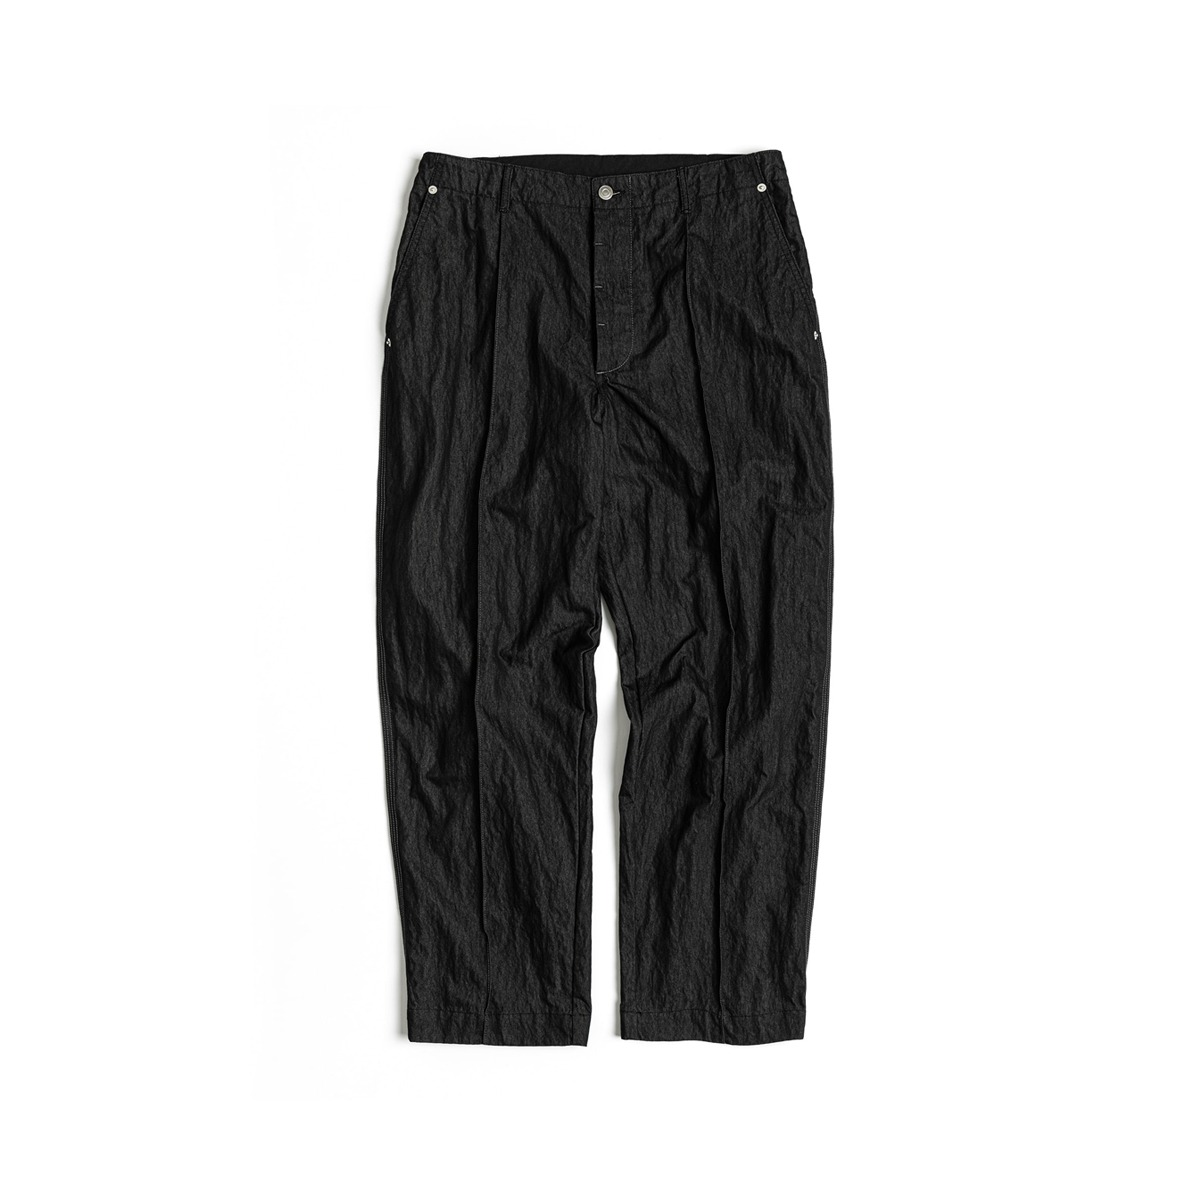 [UNAFFECTED] CONTRAST STITCH PANTS 'BLACK'